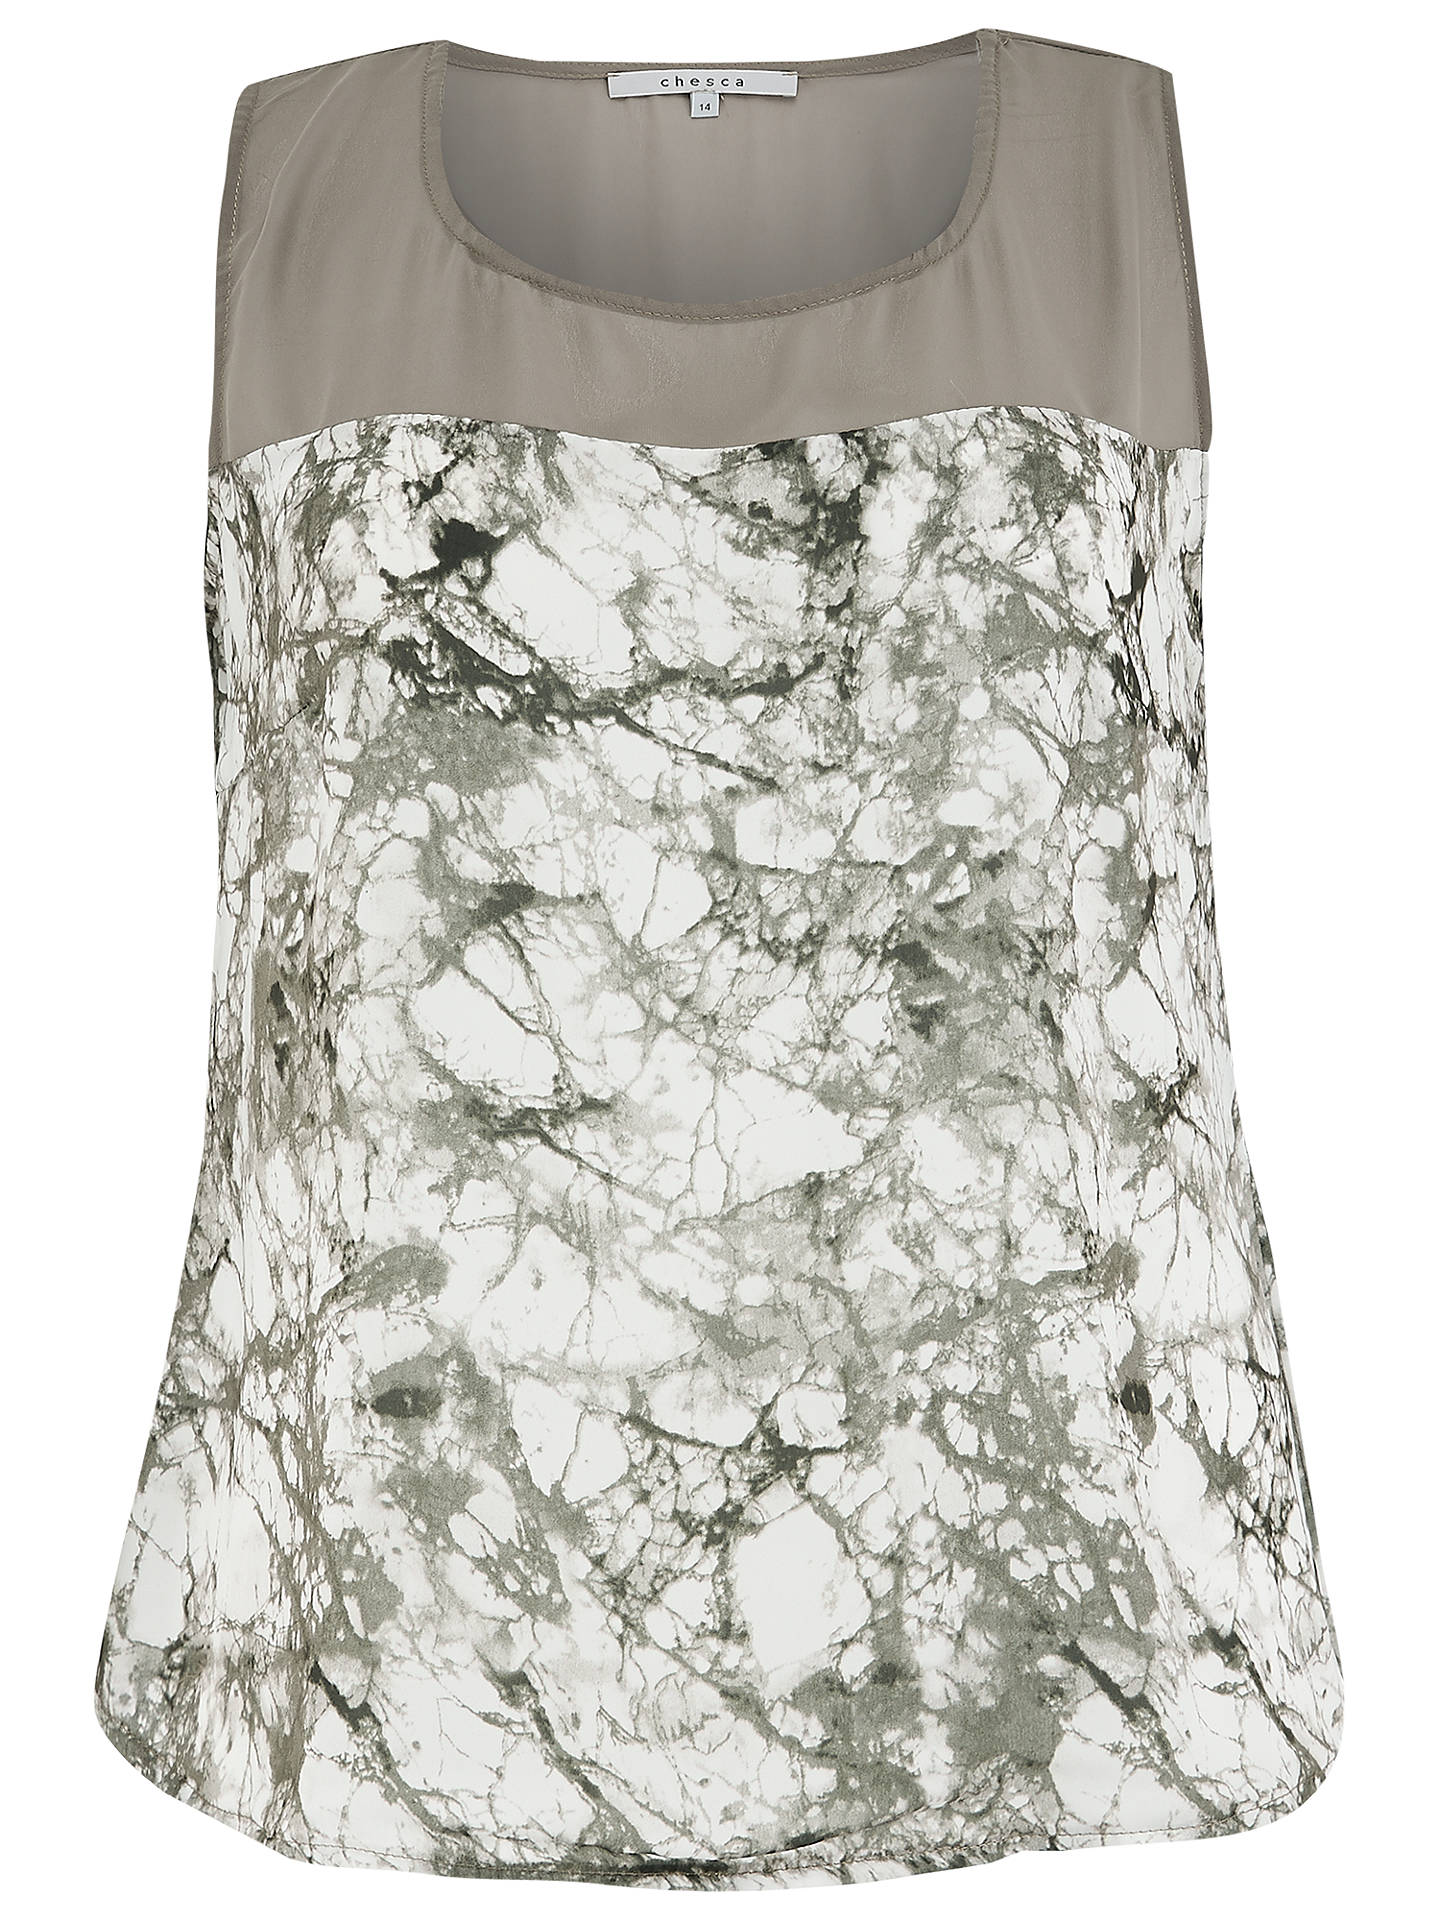 BuyChesca Printed Chiffon Trim Top, Khaki, 12 Online at johnlewis.com